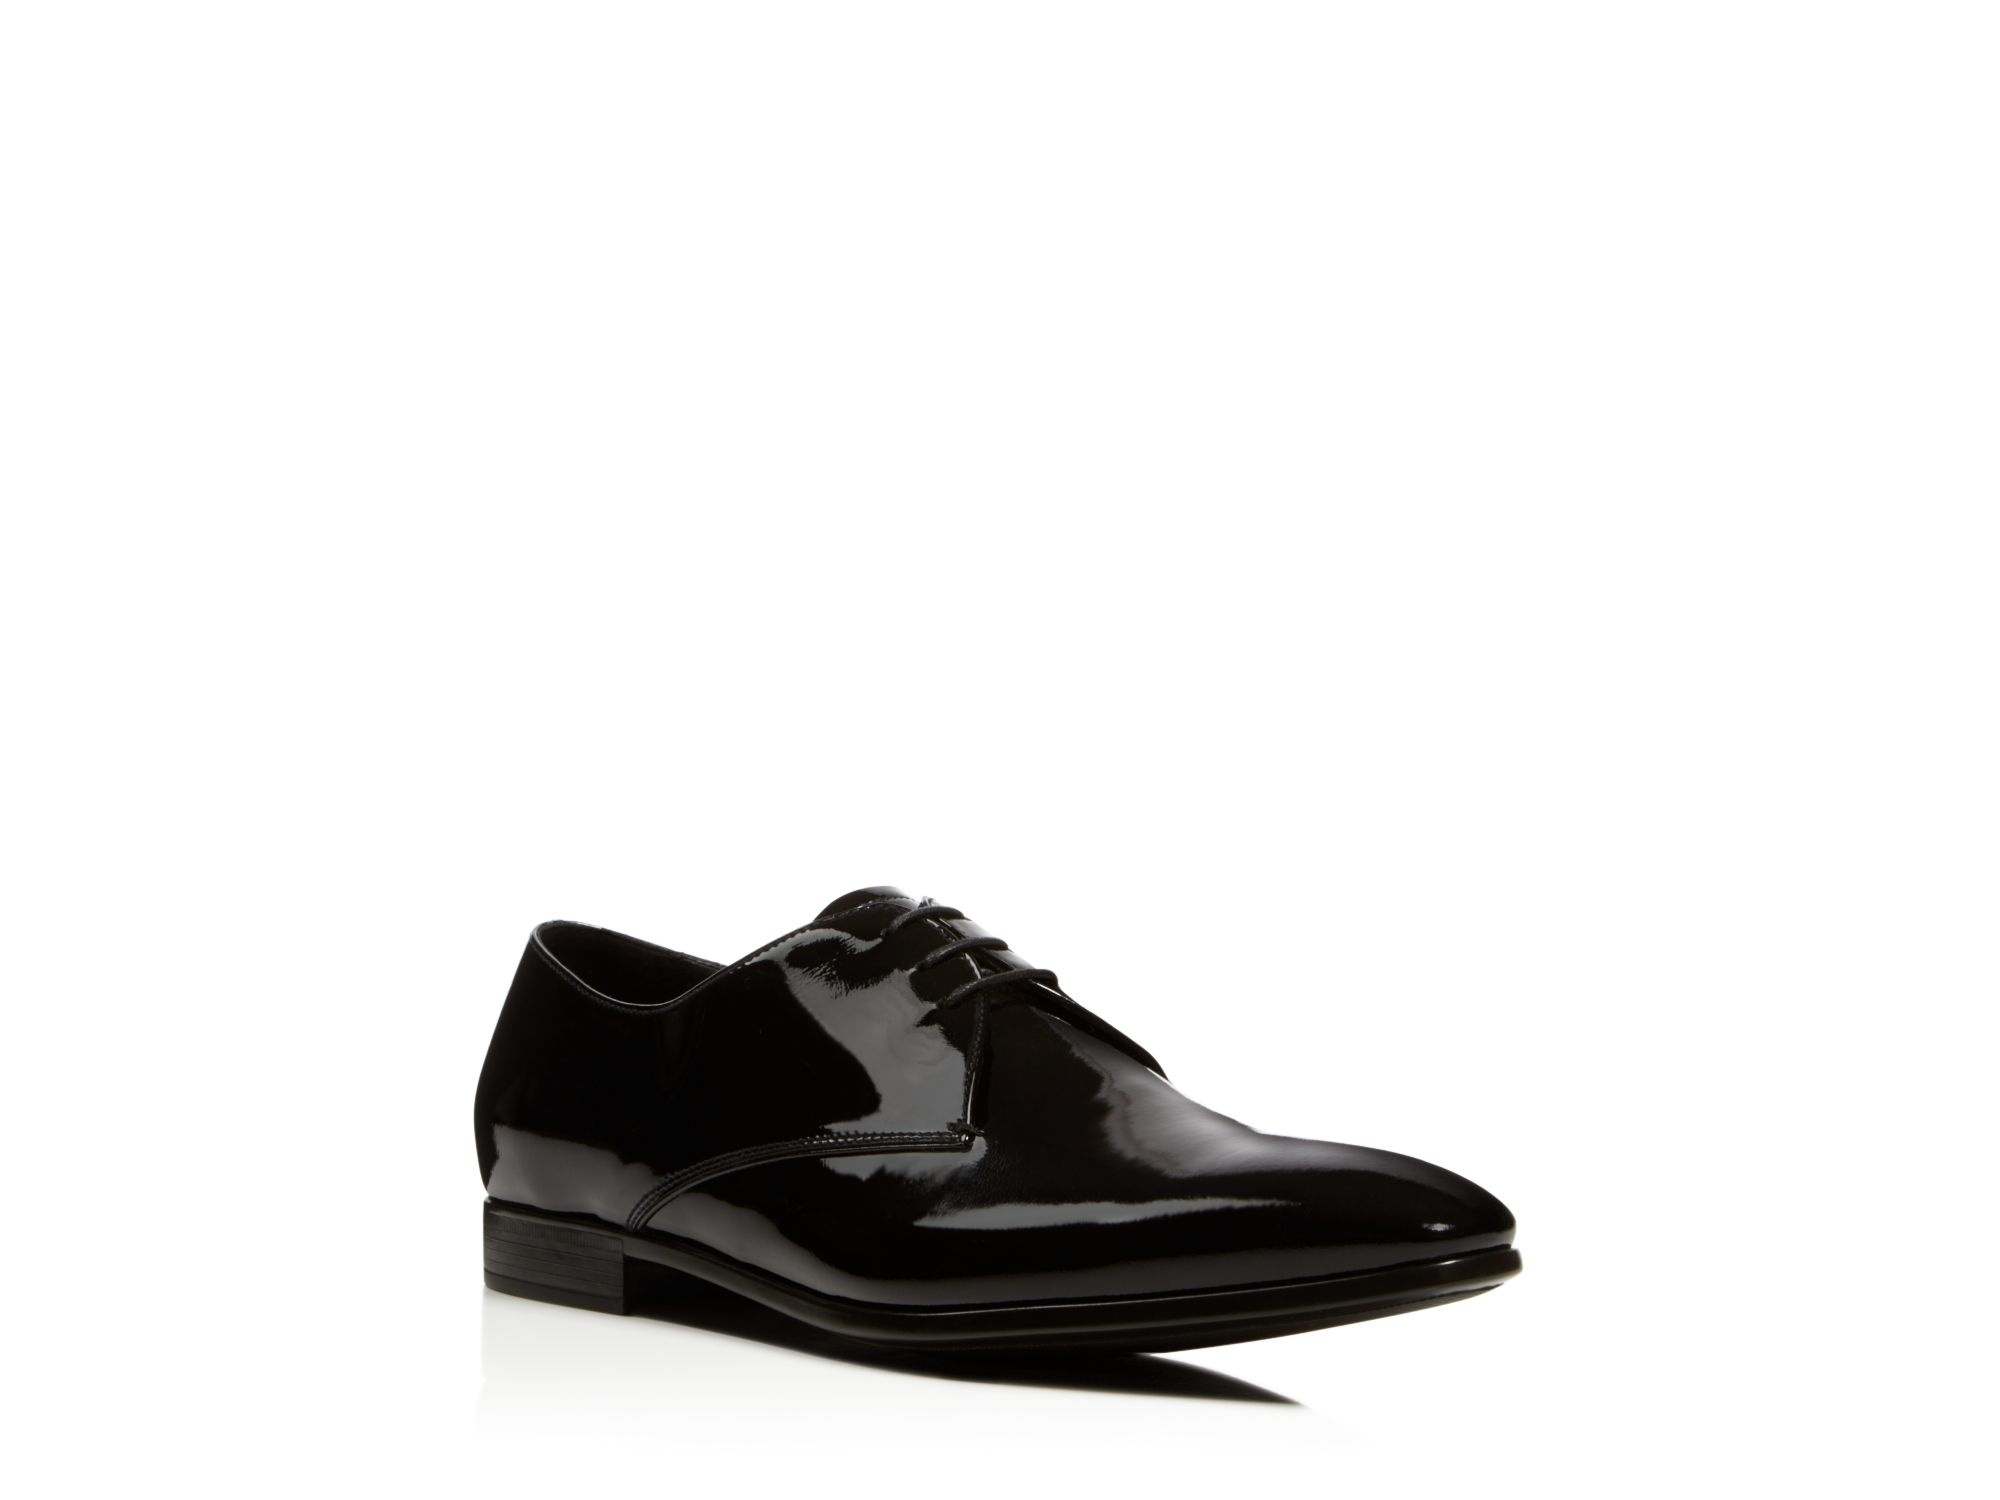 armani formal patent leather dress shoes in black for men